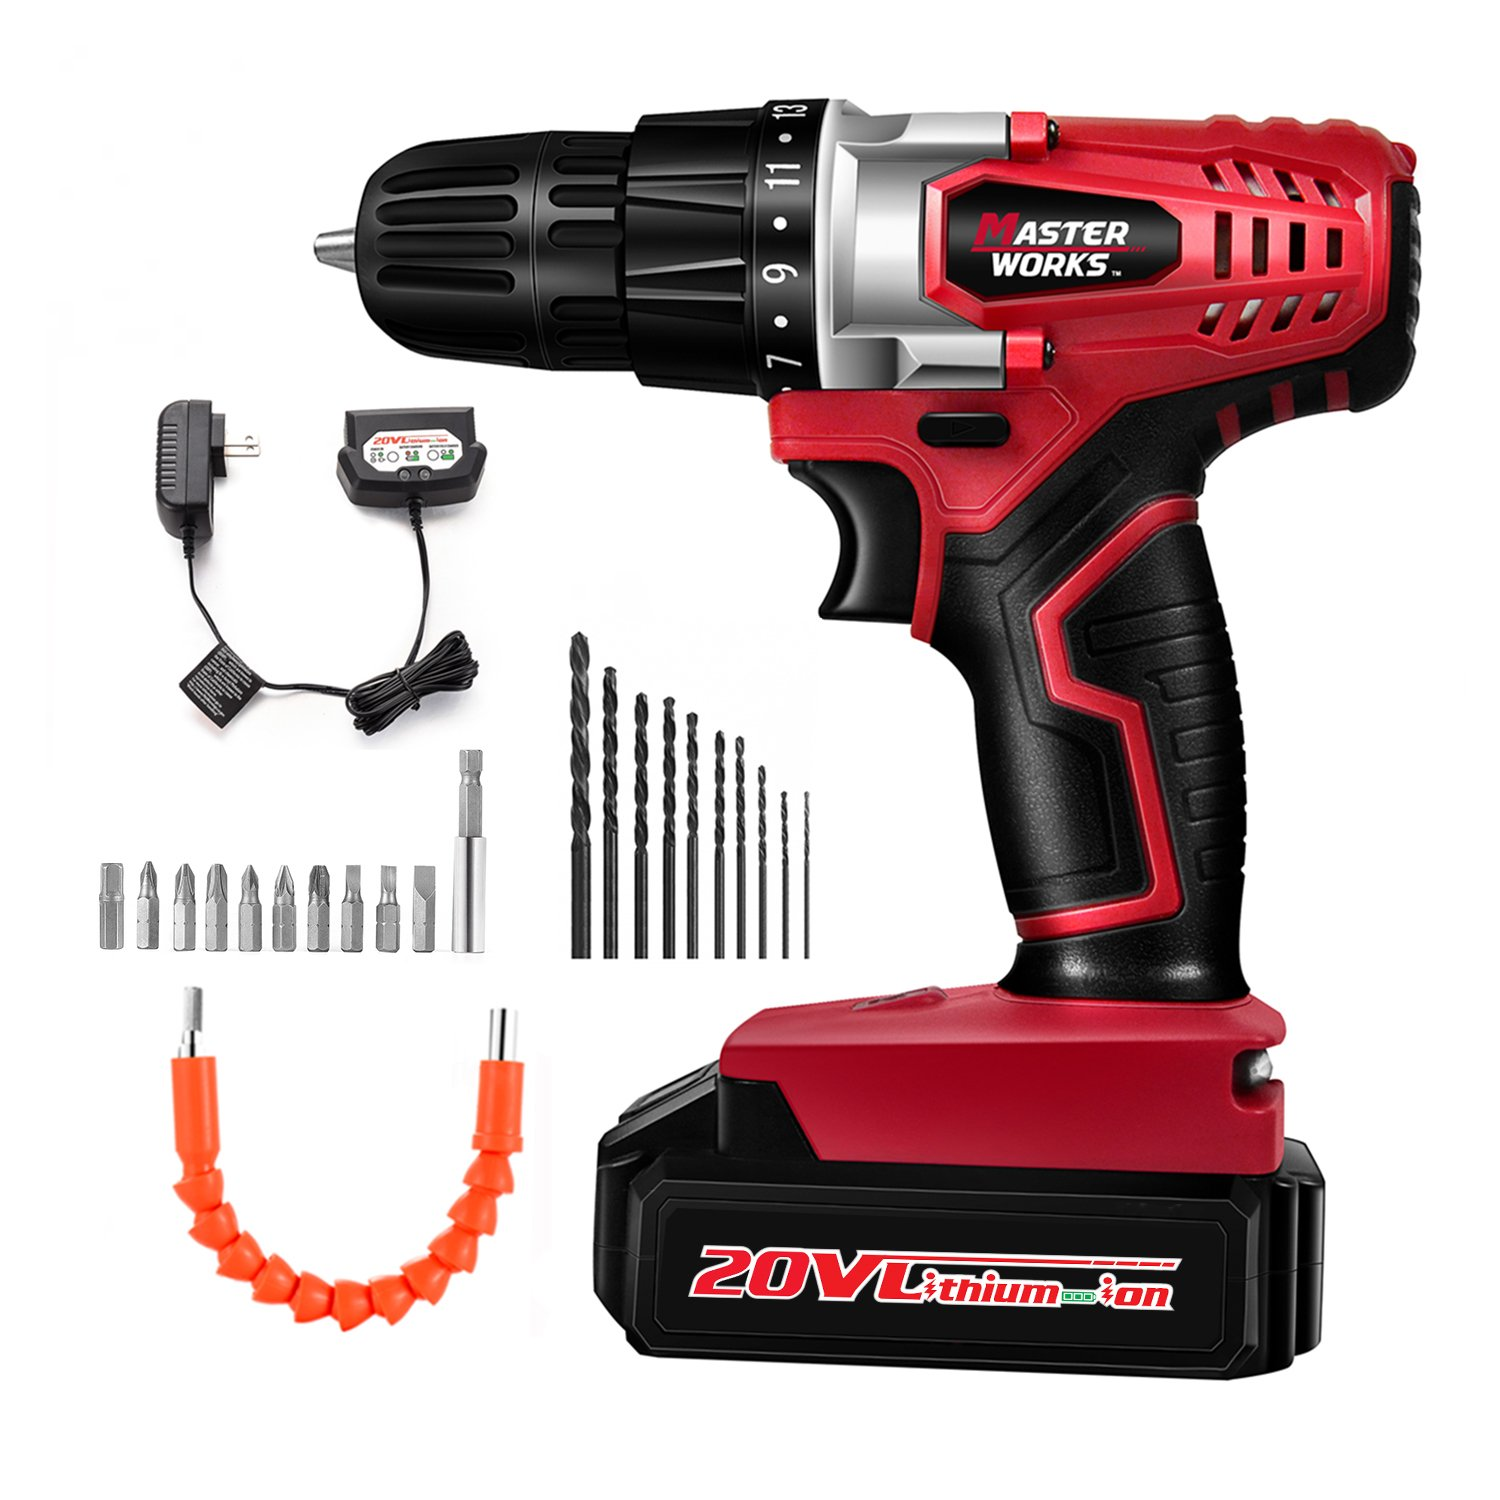 20V Cordless Drill, Power Drill Set with 3/8'' Keyless Chuck, Variable Speed, 16 Position with LED Light, 22pcs Drill/Driver Bits Included, Masterworks MW316